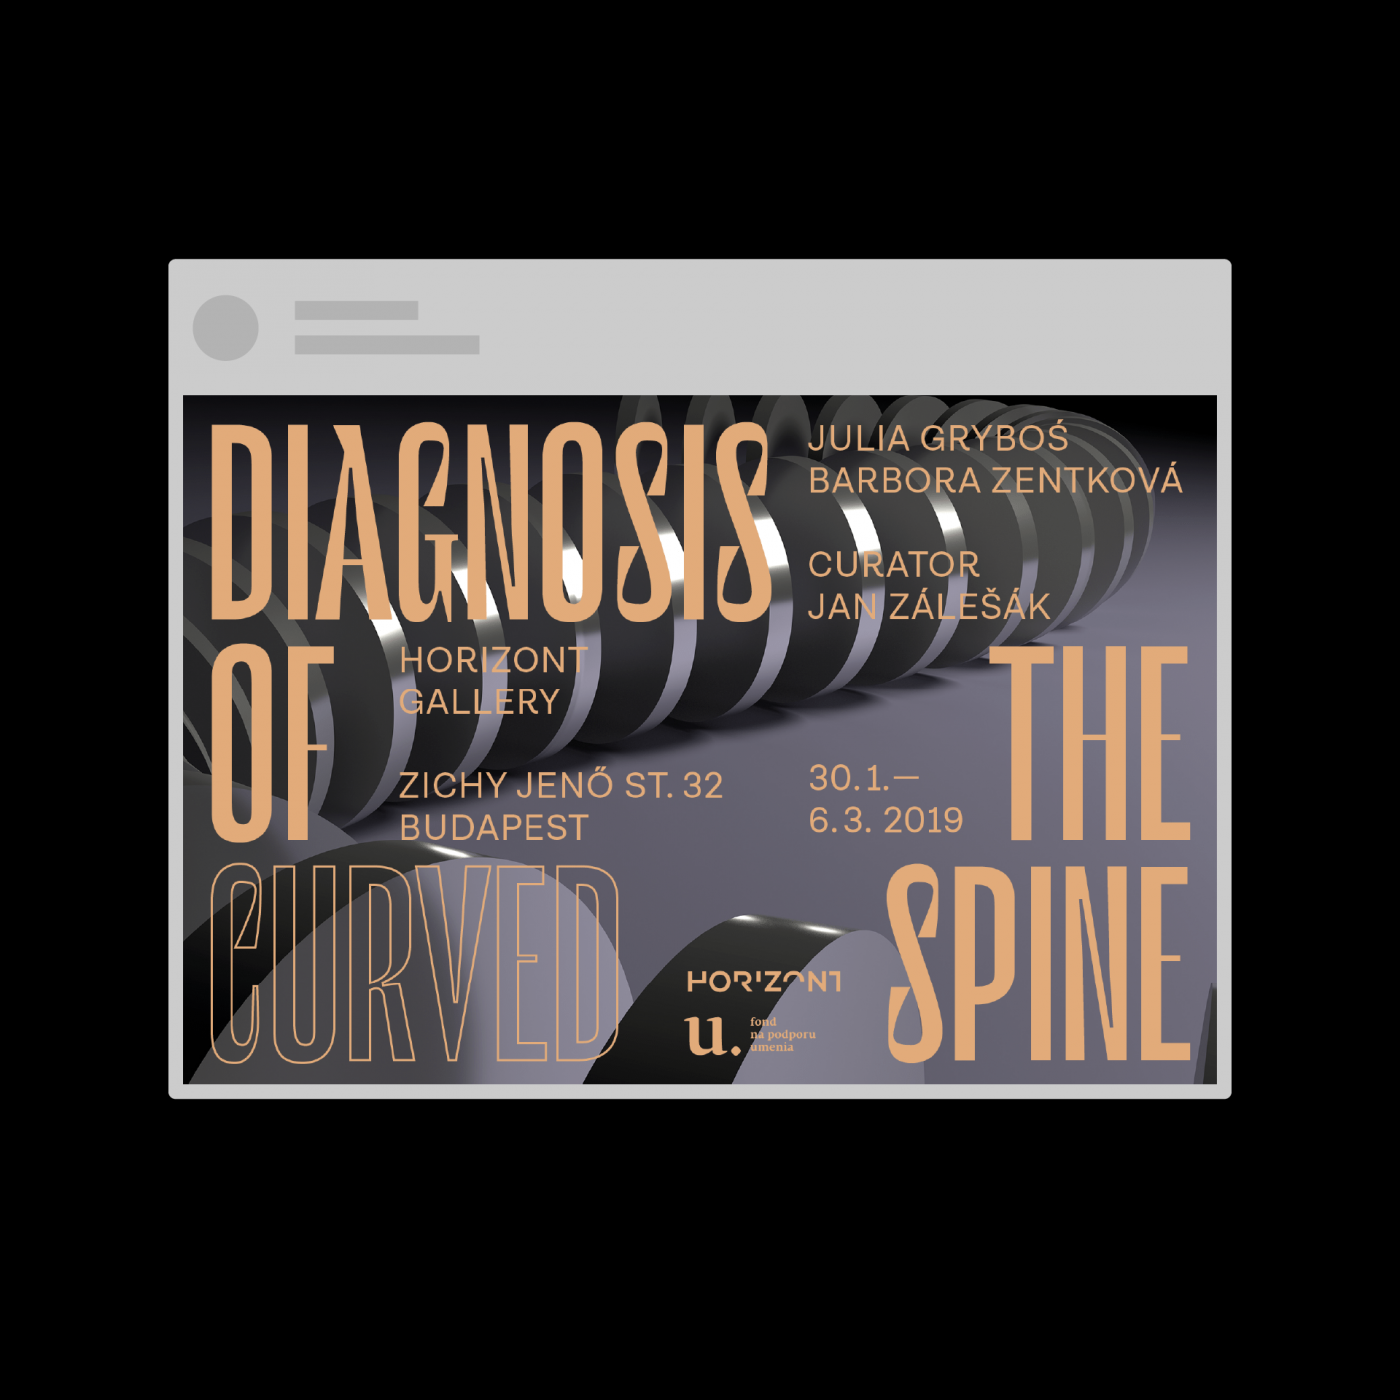 Diagnosis of the curved spine social media